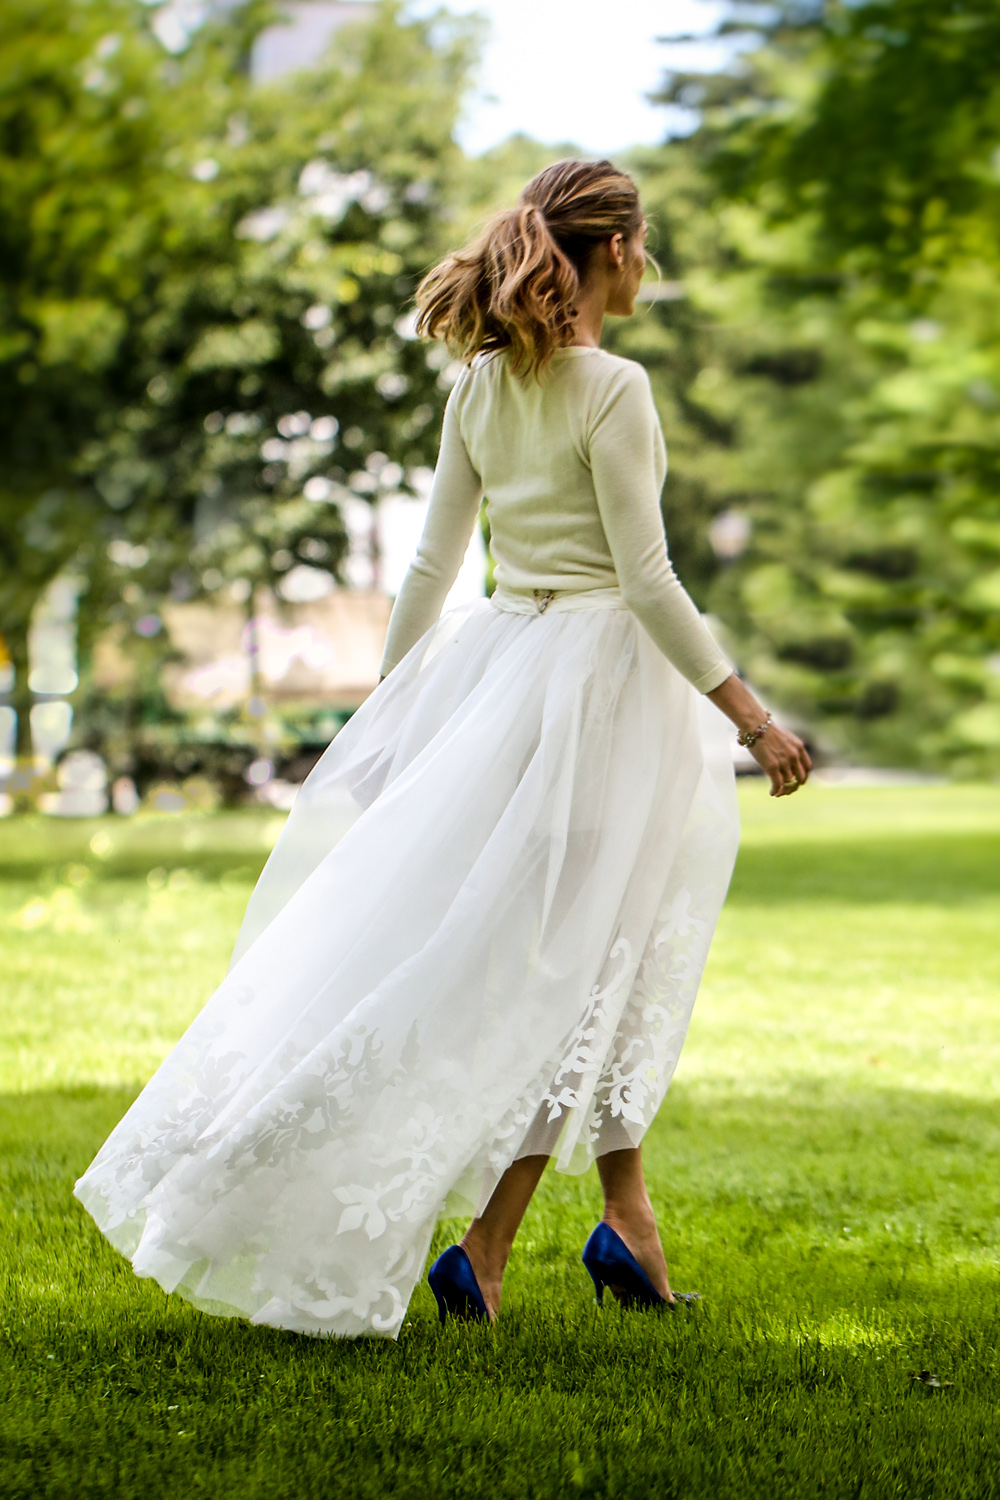 Modern Wedding Dresses The Celebrity Bride Style Edit Jolie Clothing Jamie Long Dress Angelina Kiddy Designers Heres A Novel Idea Why Not Let Your Six Children Under Age Of 12 Design